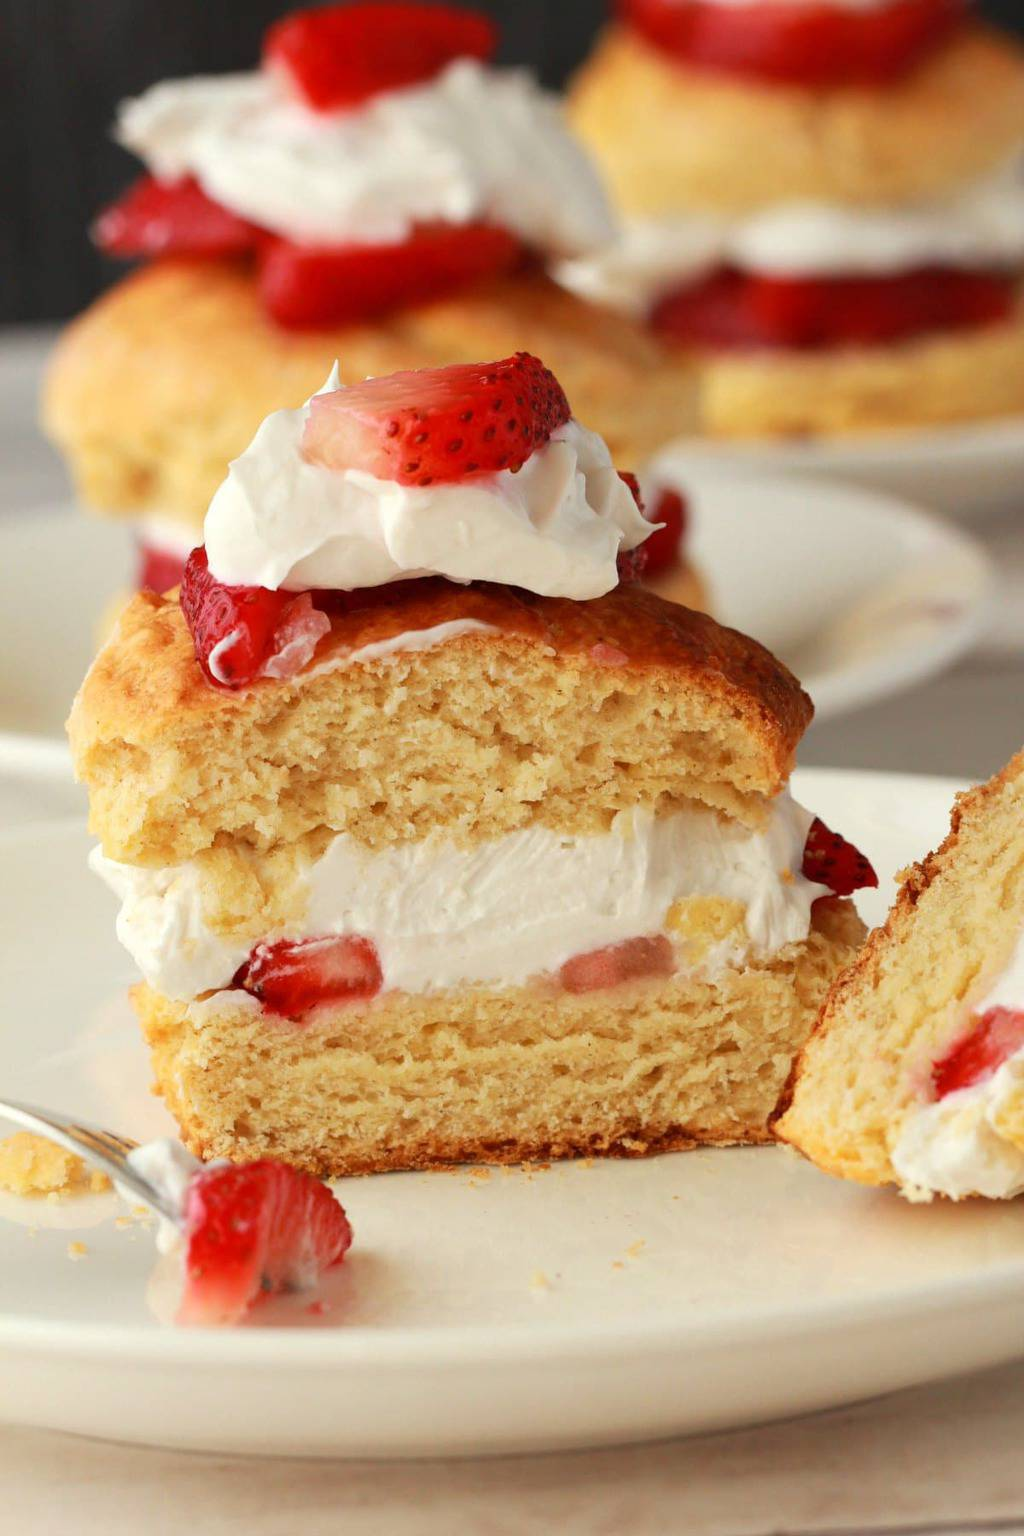 Vegan strawberry shortcake with vegan whipped cream and fresh strawberries sliced in half.